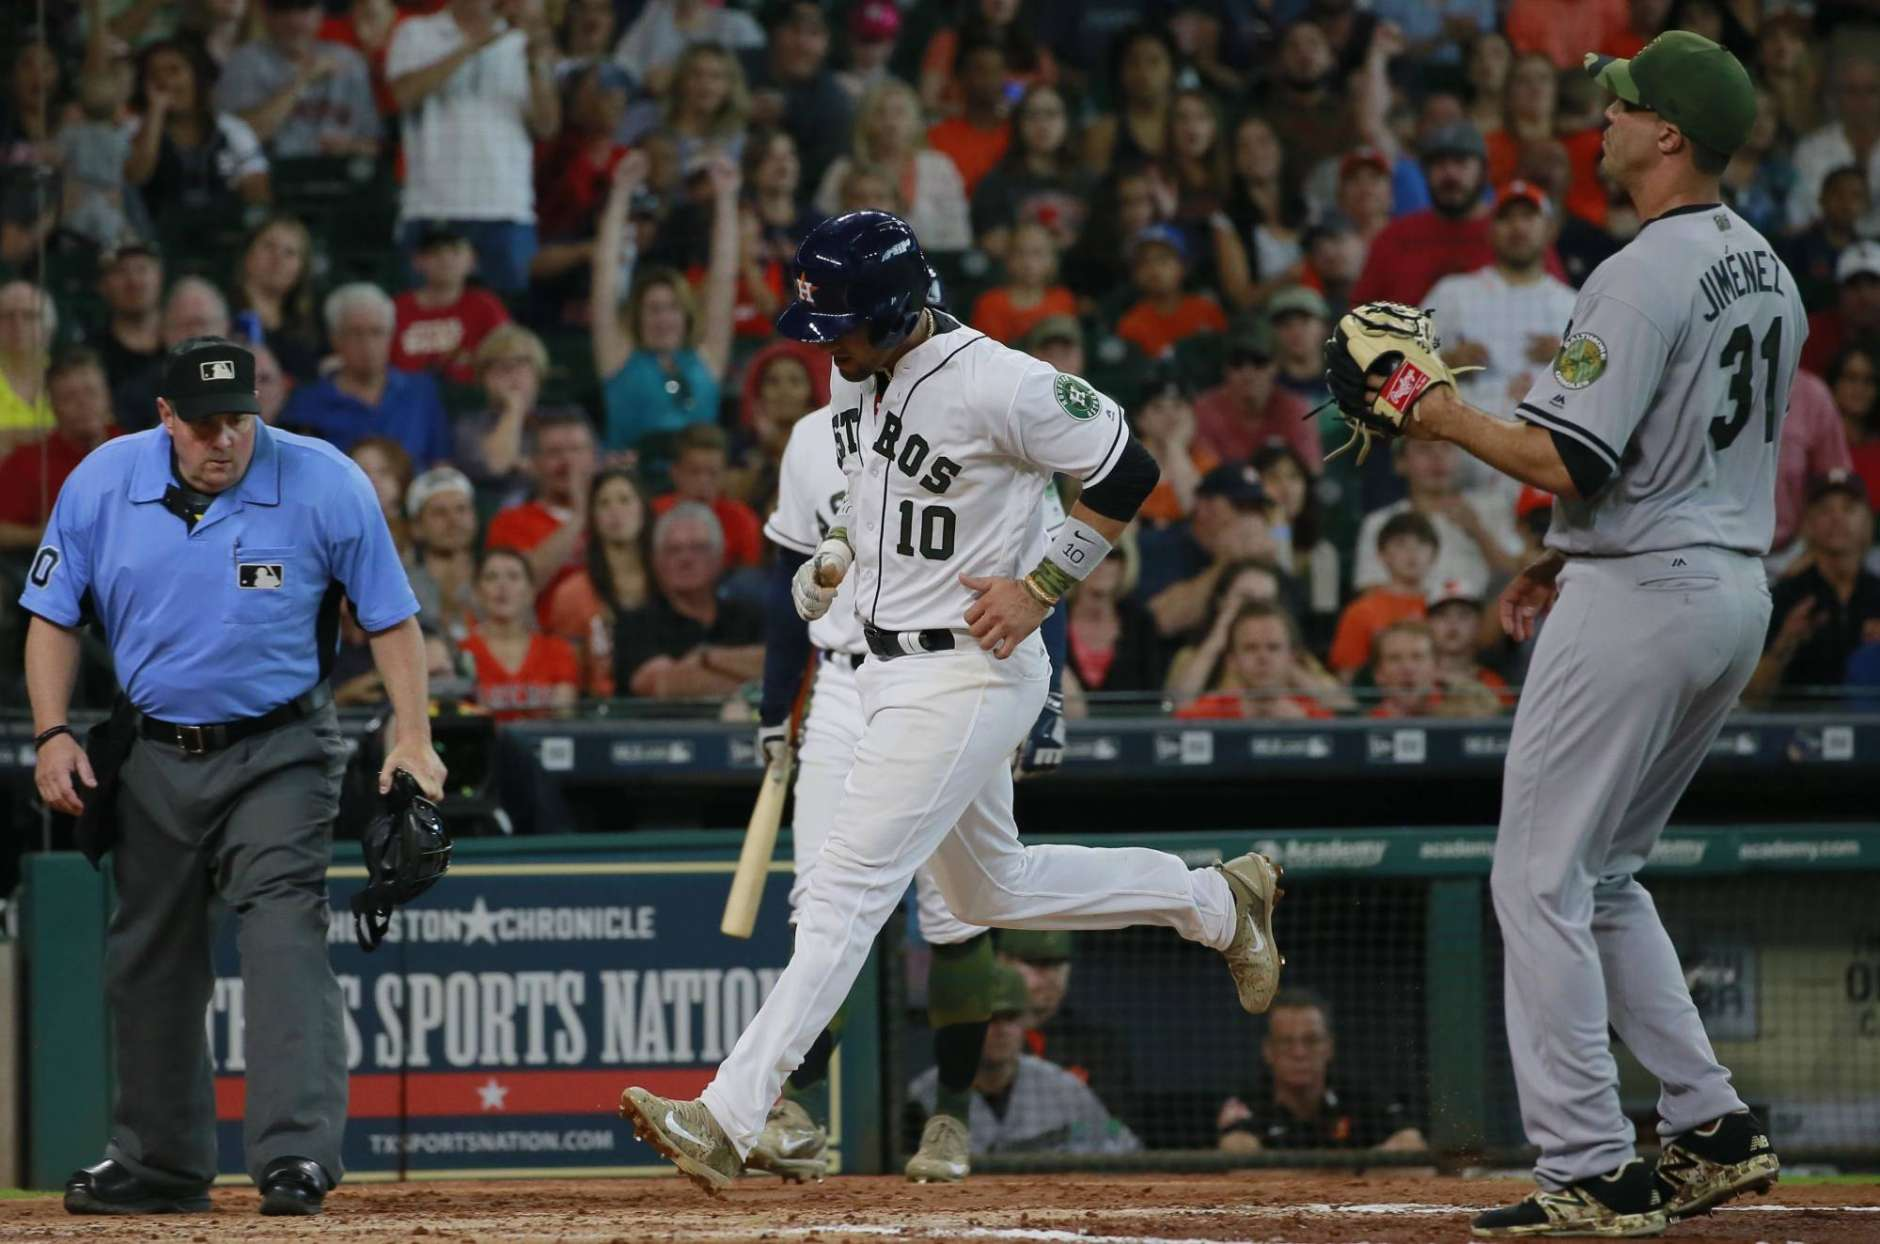 Houston Astros' Yuli Gurriel (10) scores on a wild pitch by Baltimore Orioles' reliever Ubaldo Jimenez (31) in the third inning of a baseball game Sunday, May 28, 2017, in Houston. (AP Photo/Richard Carson)